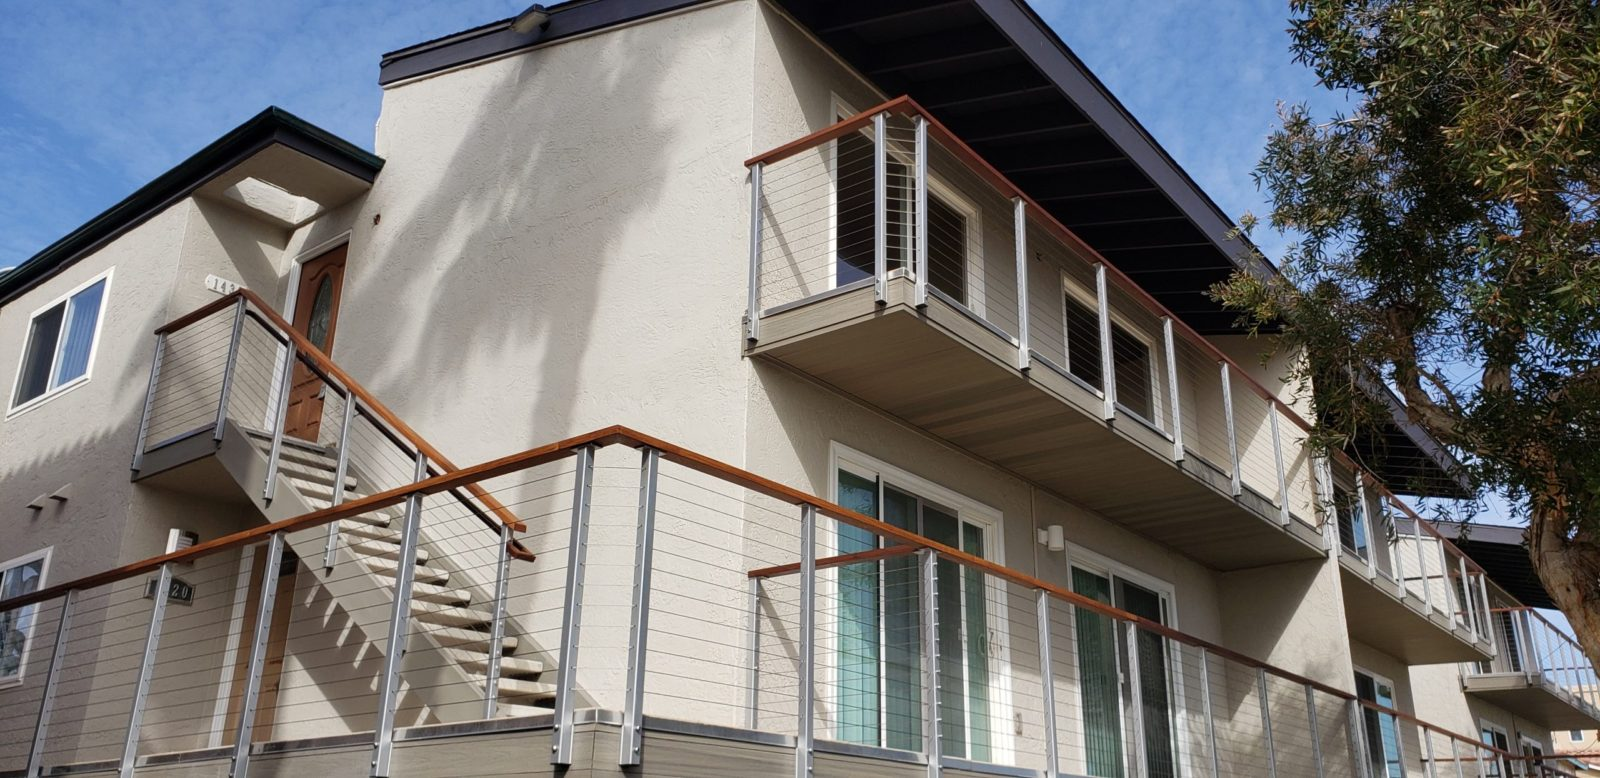 Stainless Steel Cable Railings San Diego Independent Construction